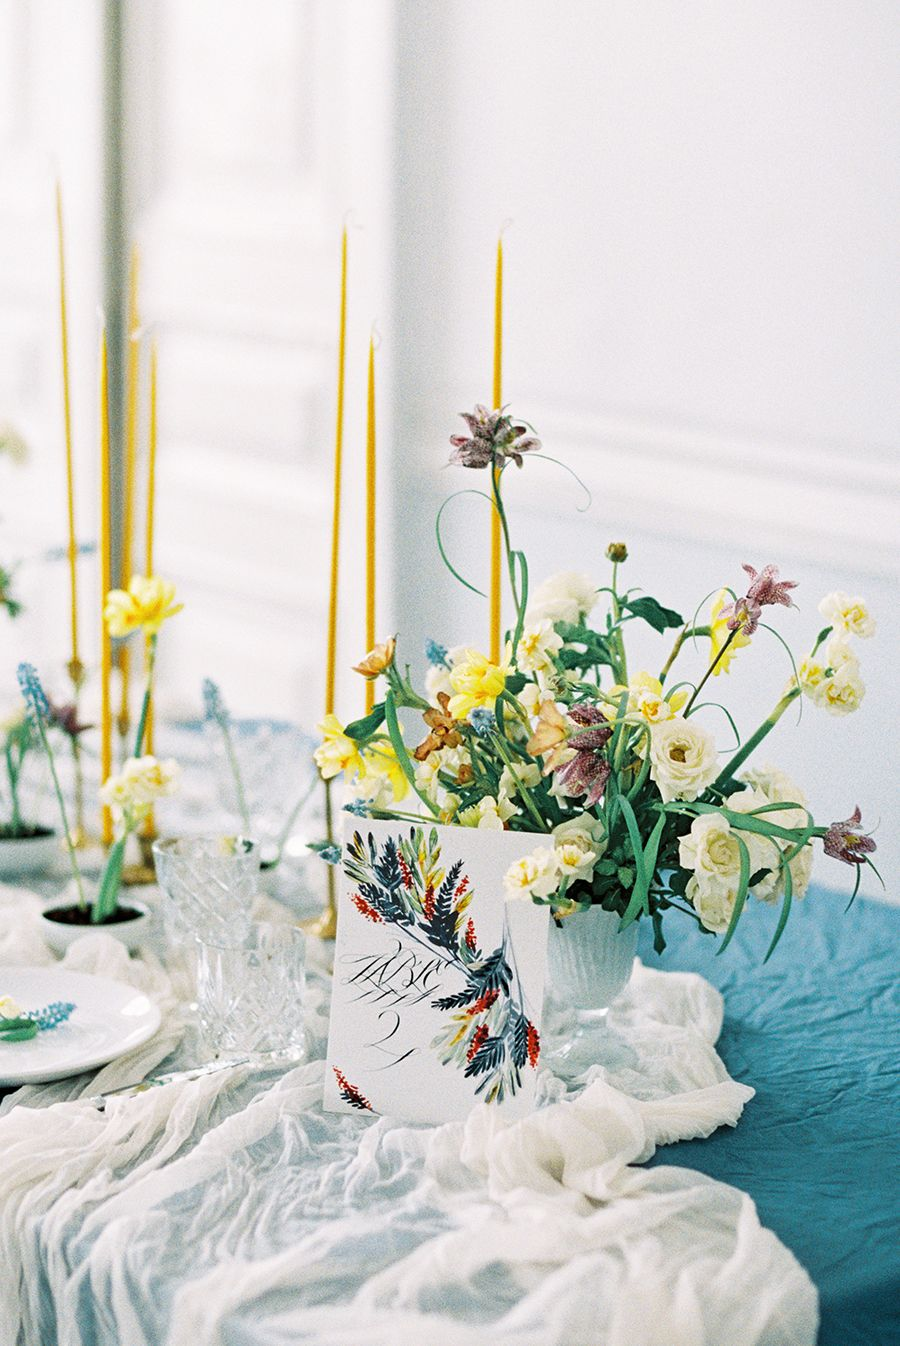 Ethereal Wedding Inspiration with Teal and Marigold | Ethereal ...